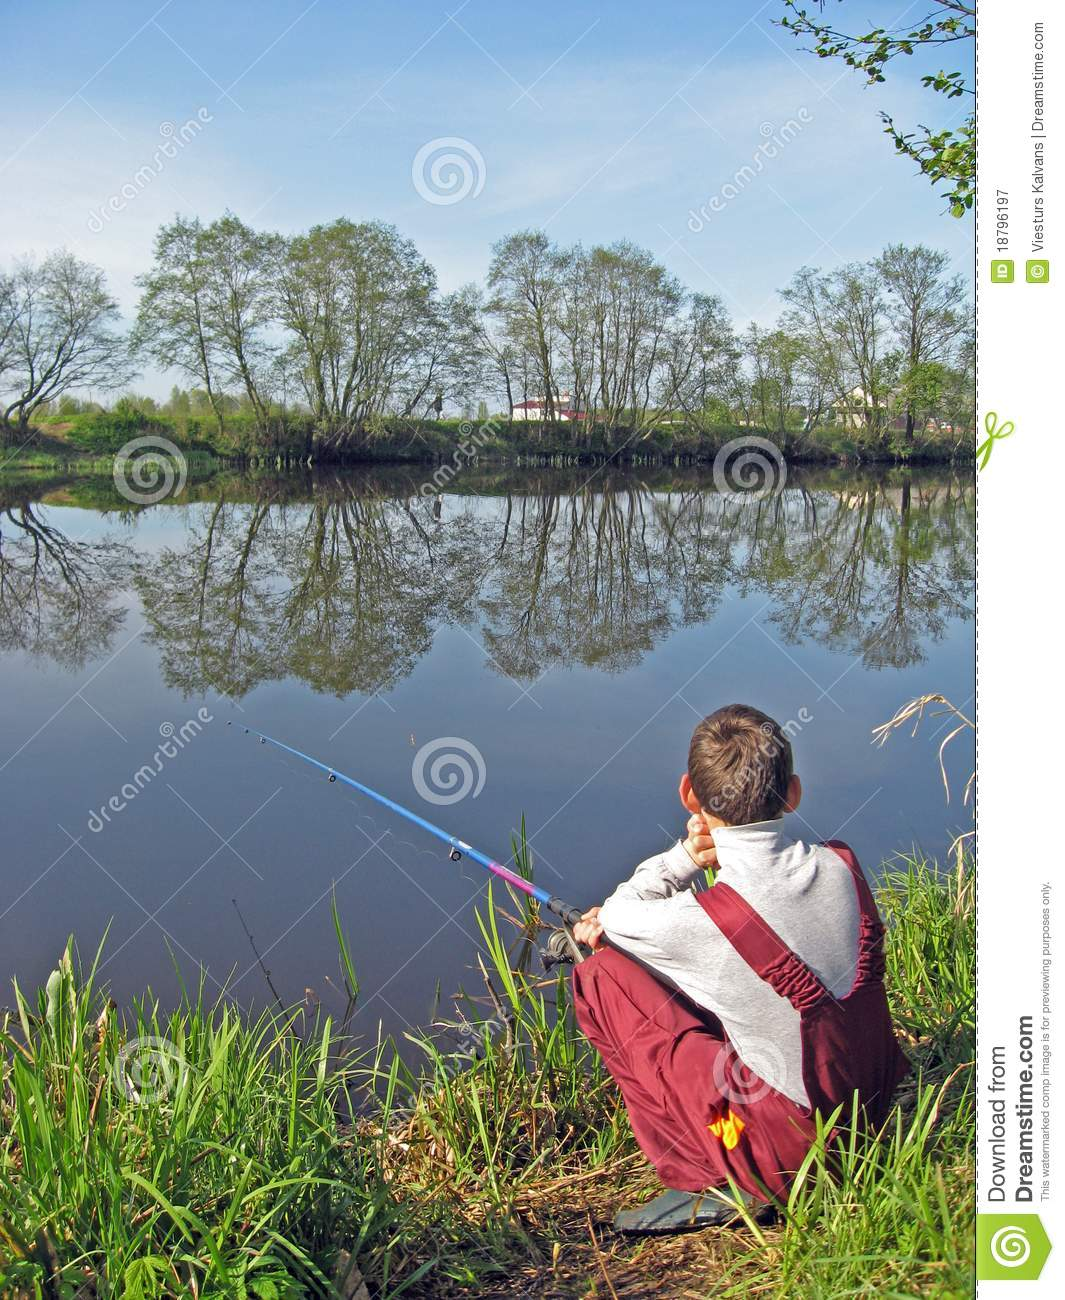 Fishing on pond 2 stock image image of fishing tools for Stocked fishing ponds near me